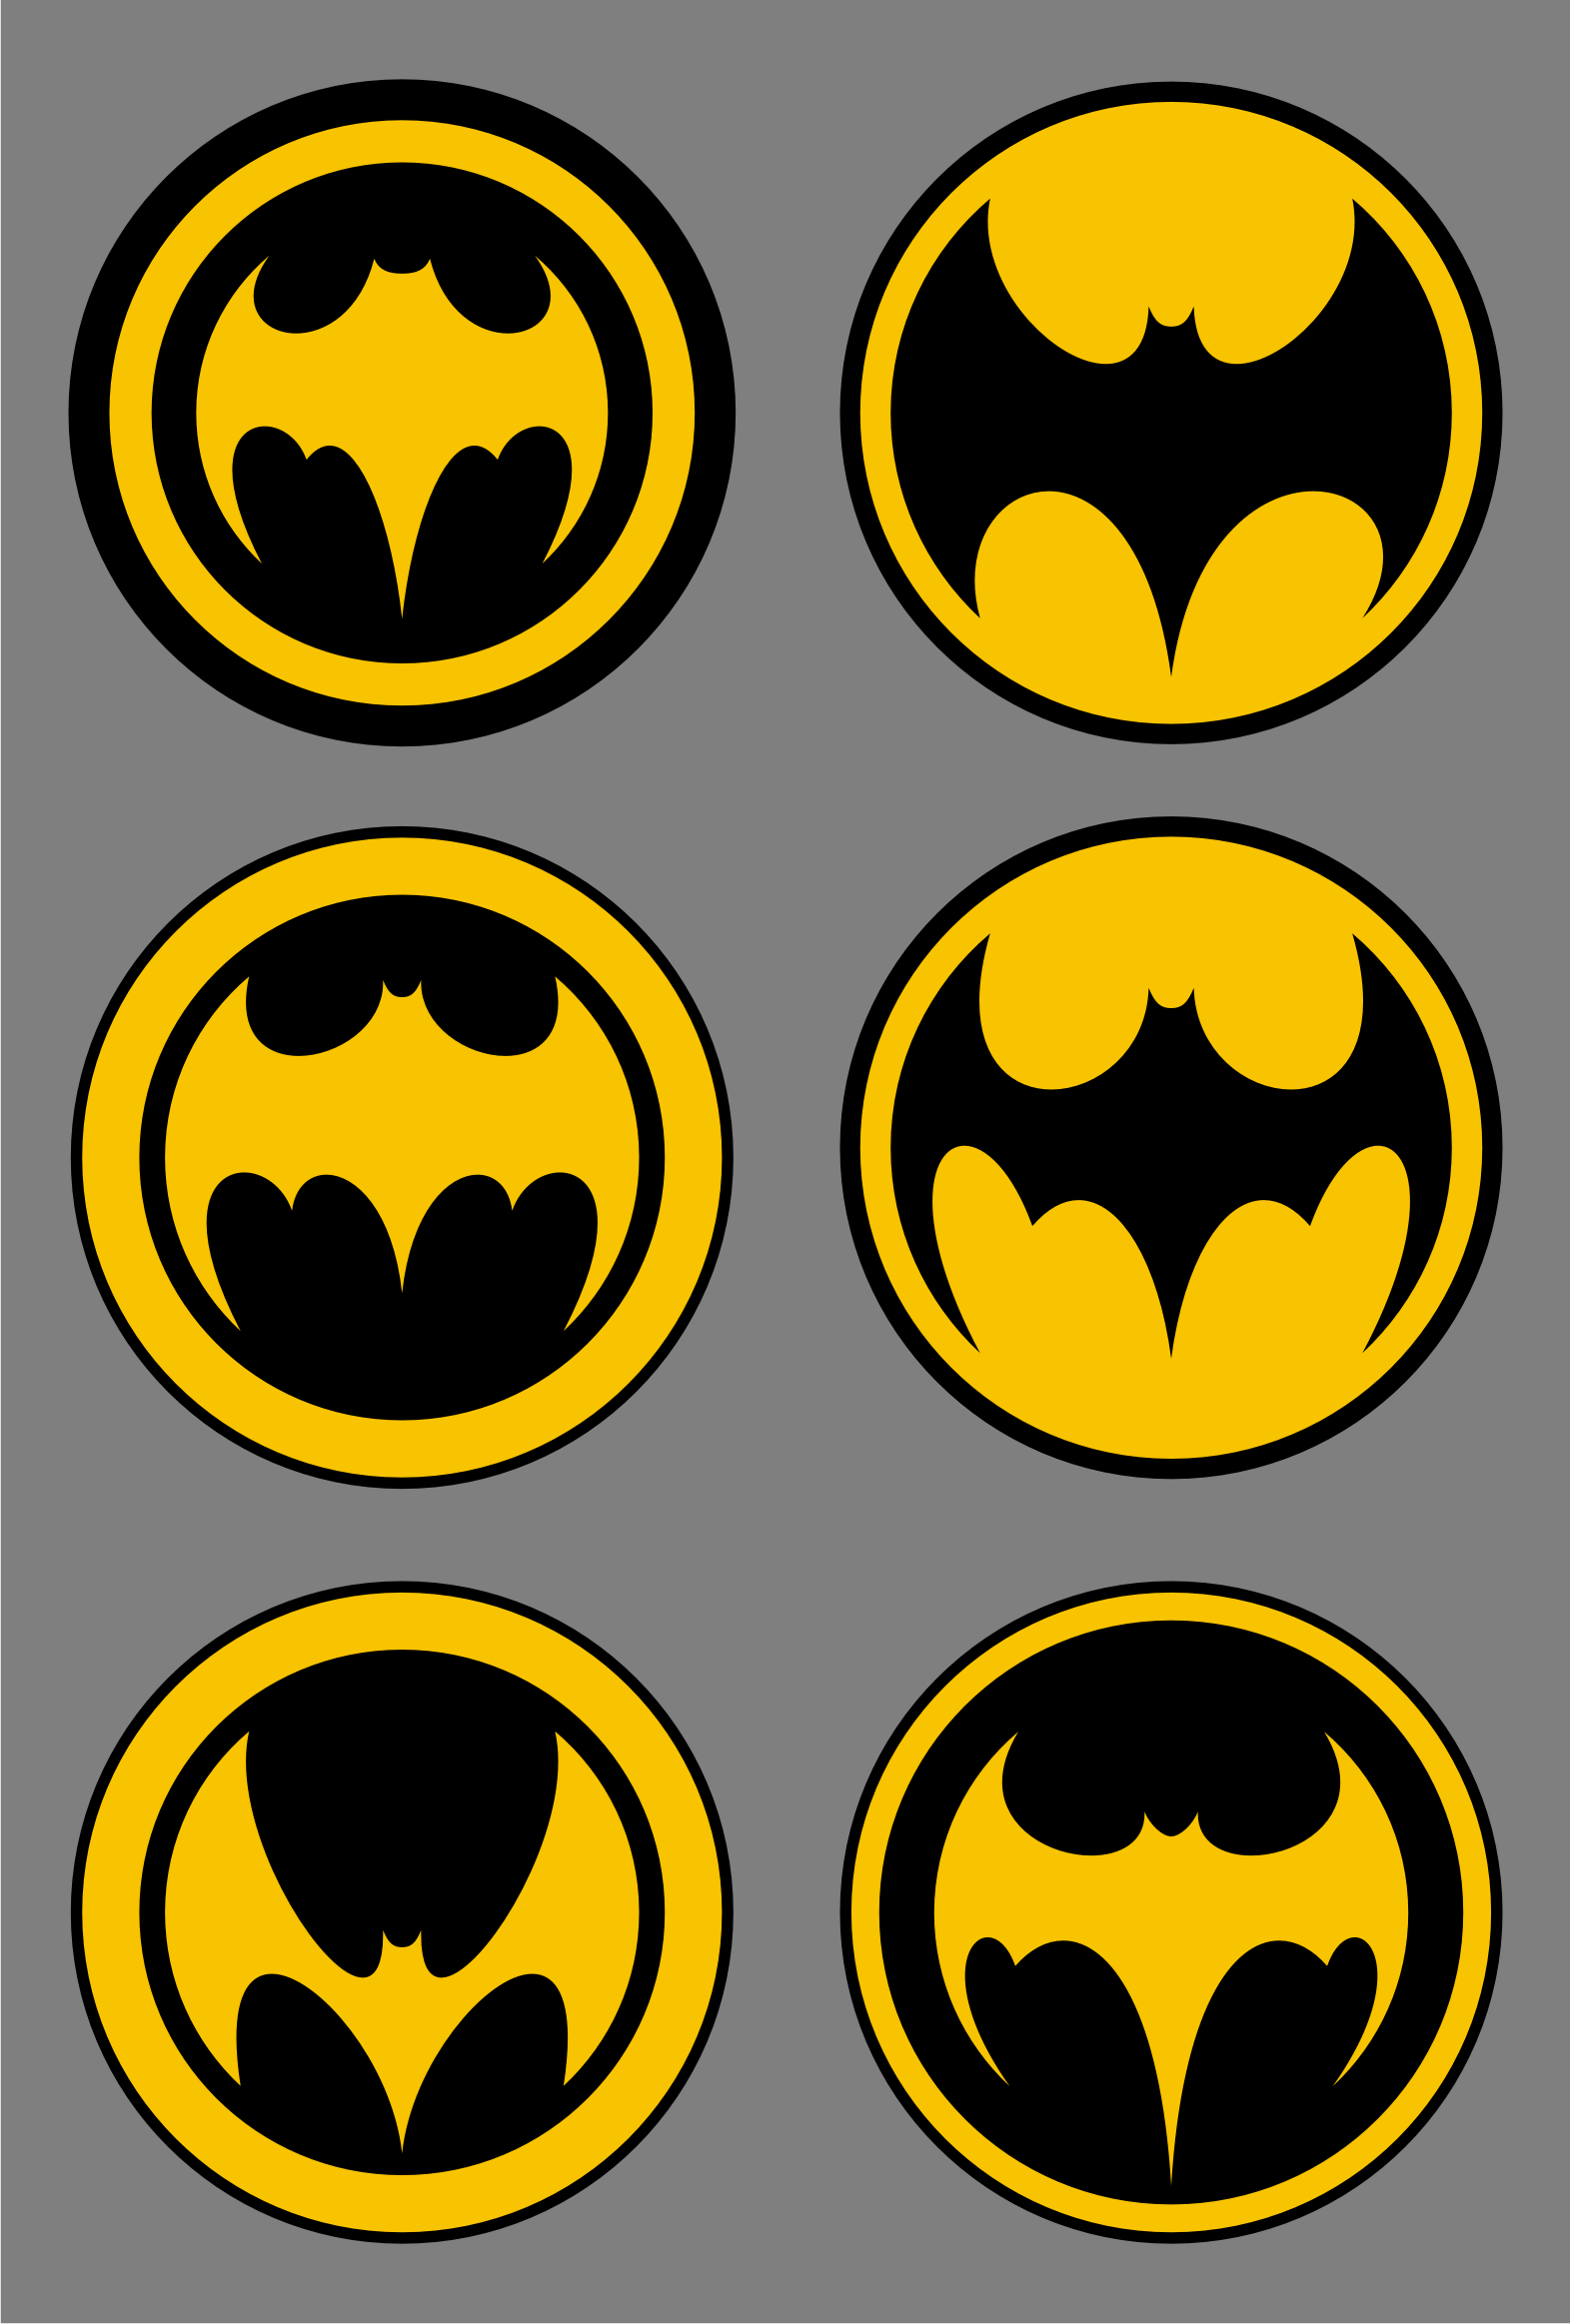 Batman Logos and Batman fan art